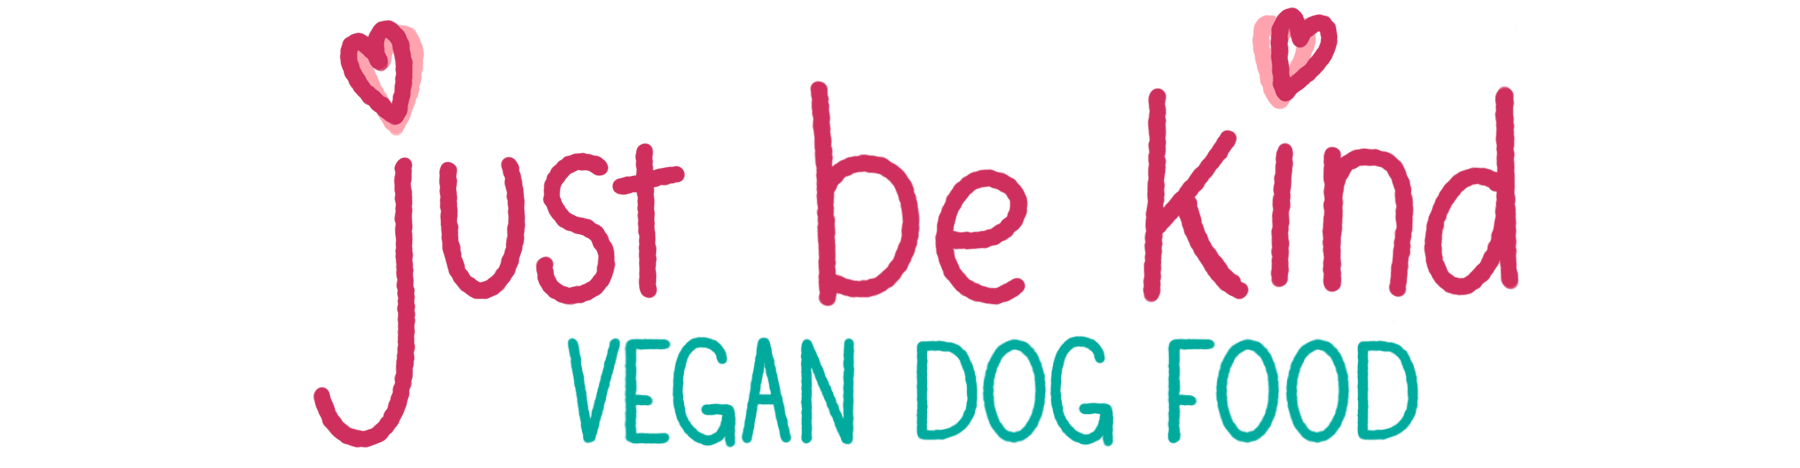 Just be Kind Vegan Dog Food